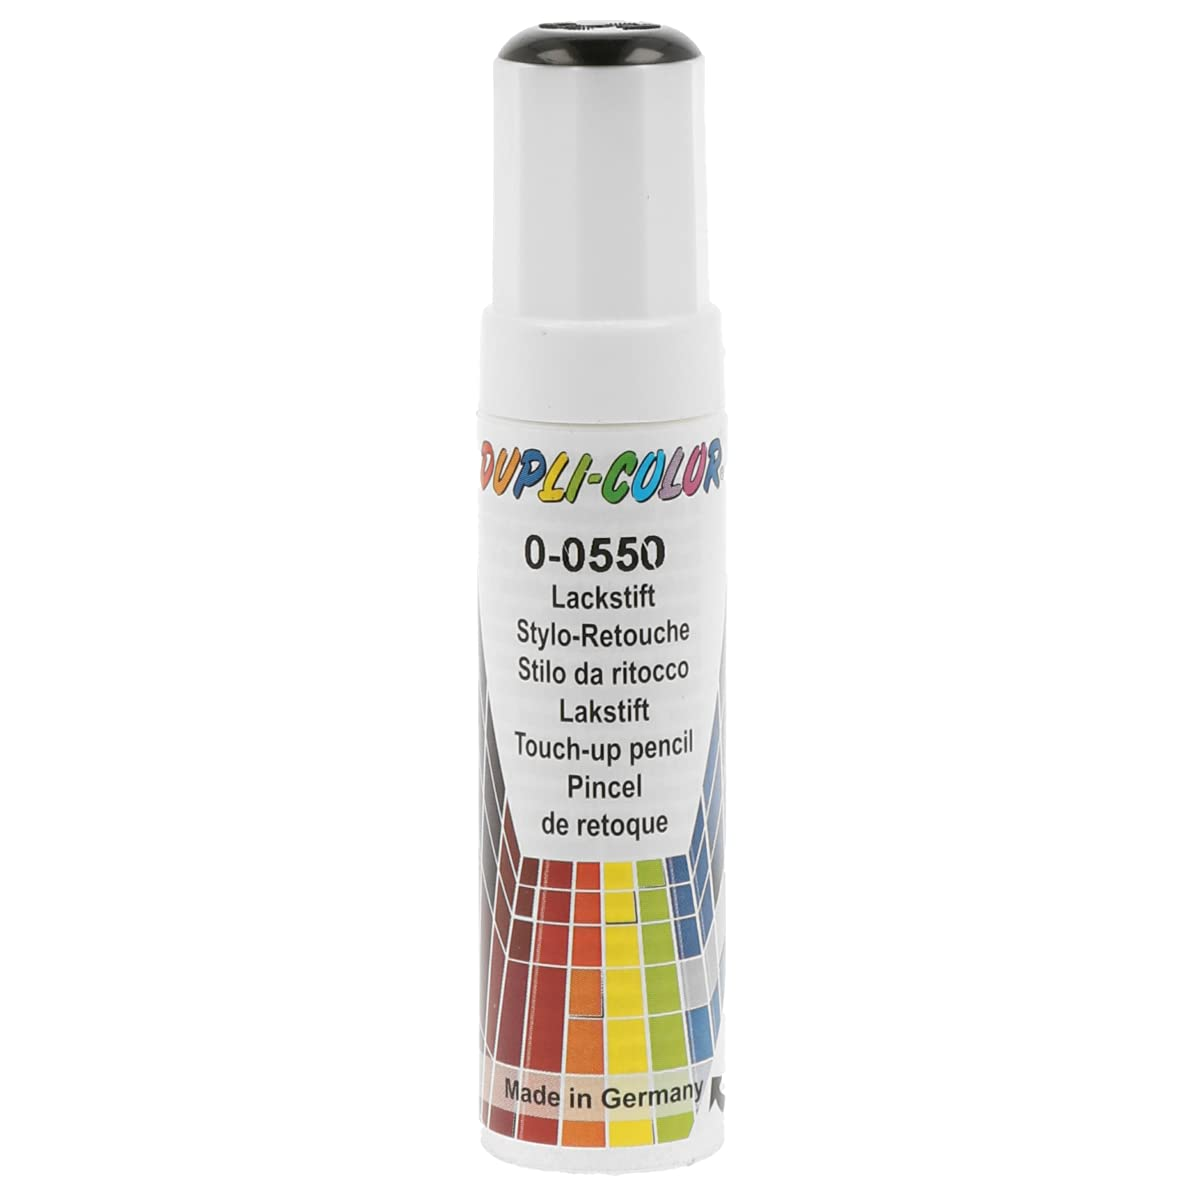 Dupli-Color 598401 Lackstift Auto-Color DS schwarz 0-0550 gl. 12ml, Black von Dupli Color